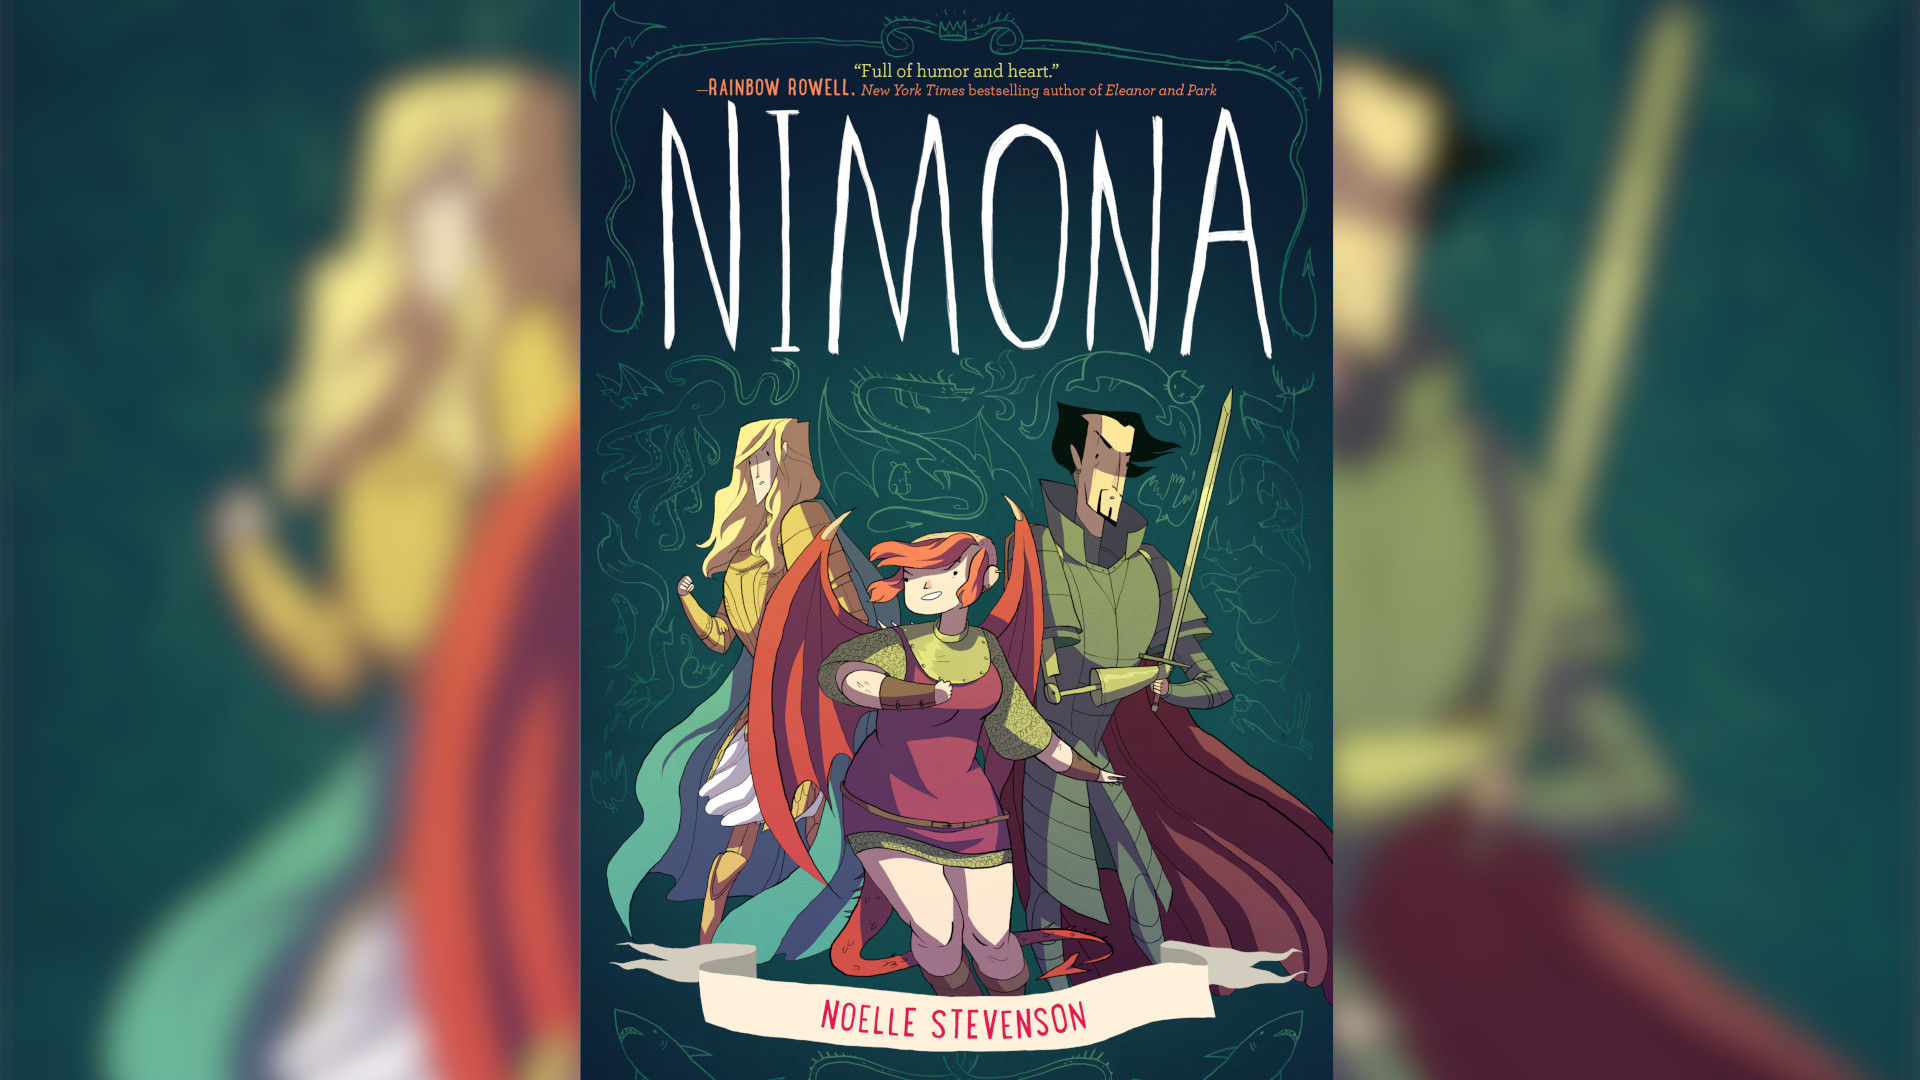 Nimona: A quest for queer love coded into a medieval adventure